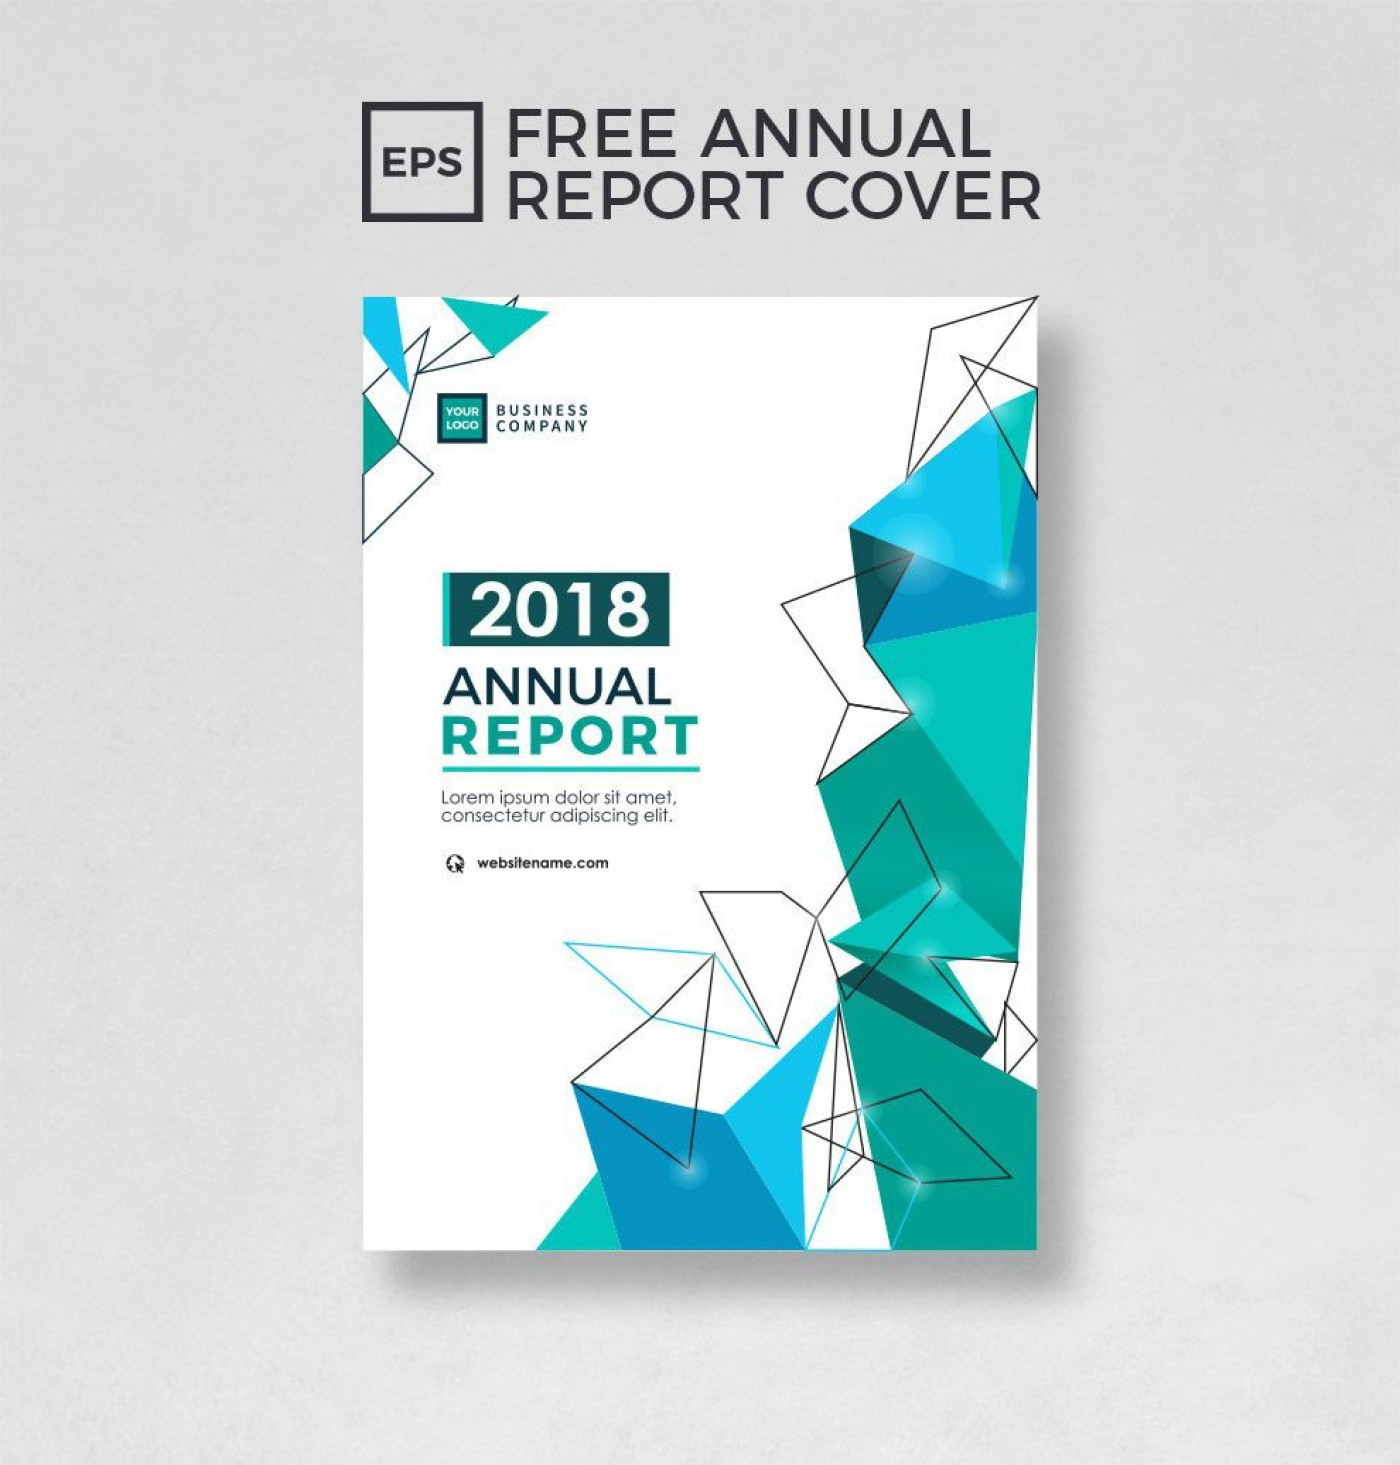 000 Exceptional Free Download Annual Report Cover Design Template High Definition  Indesign In Word1400